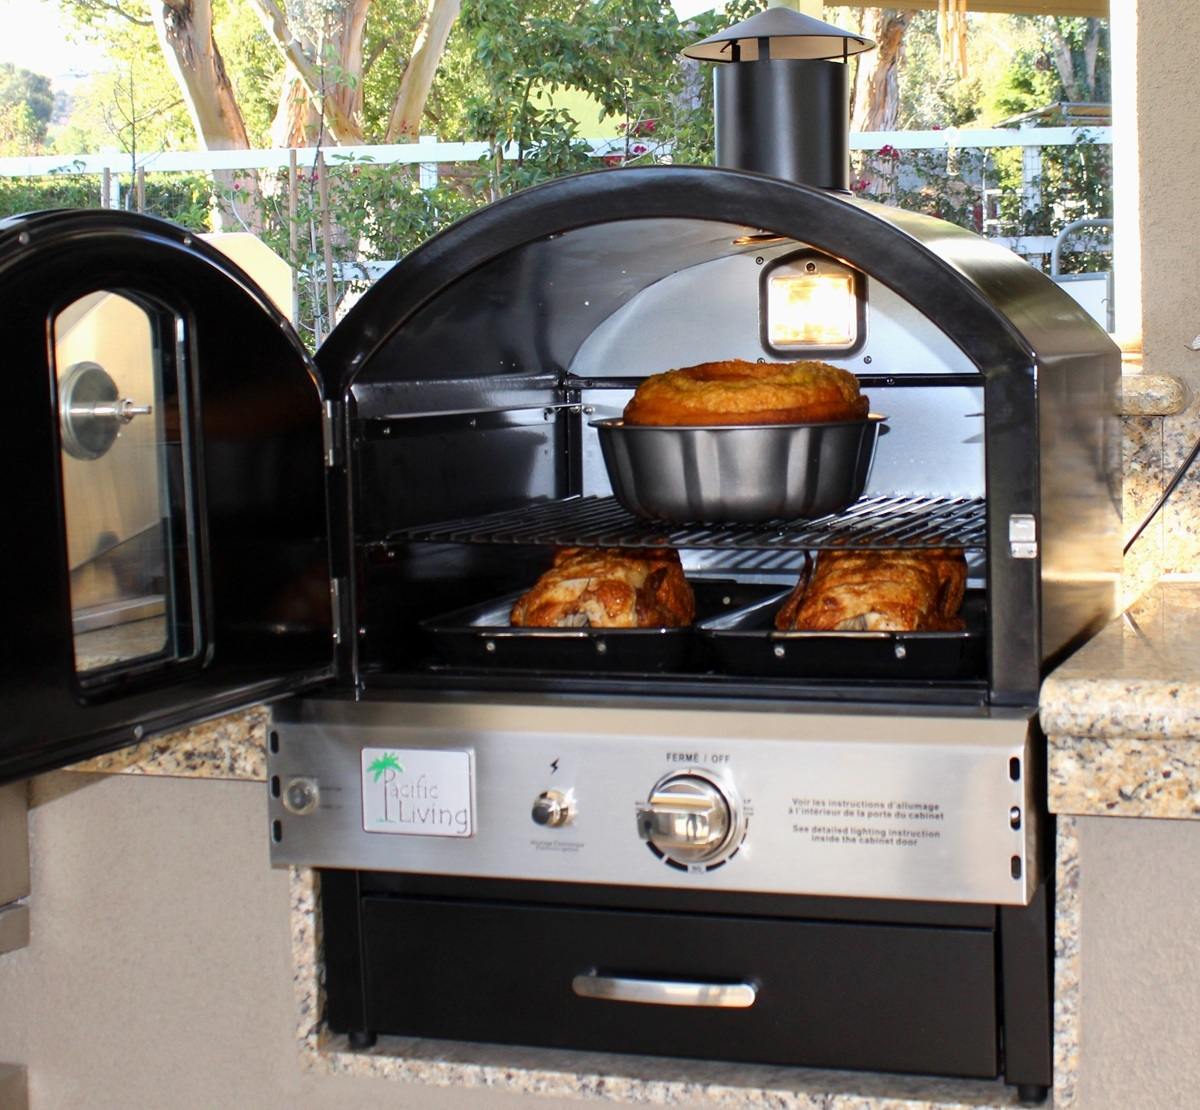 Pacific Living Black POwder Coat Outdoor Oven